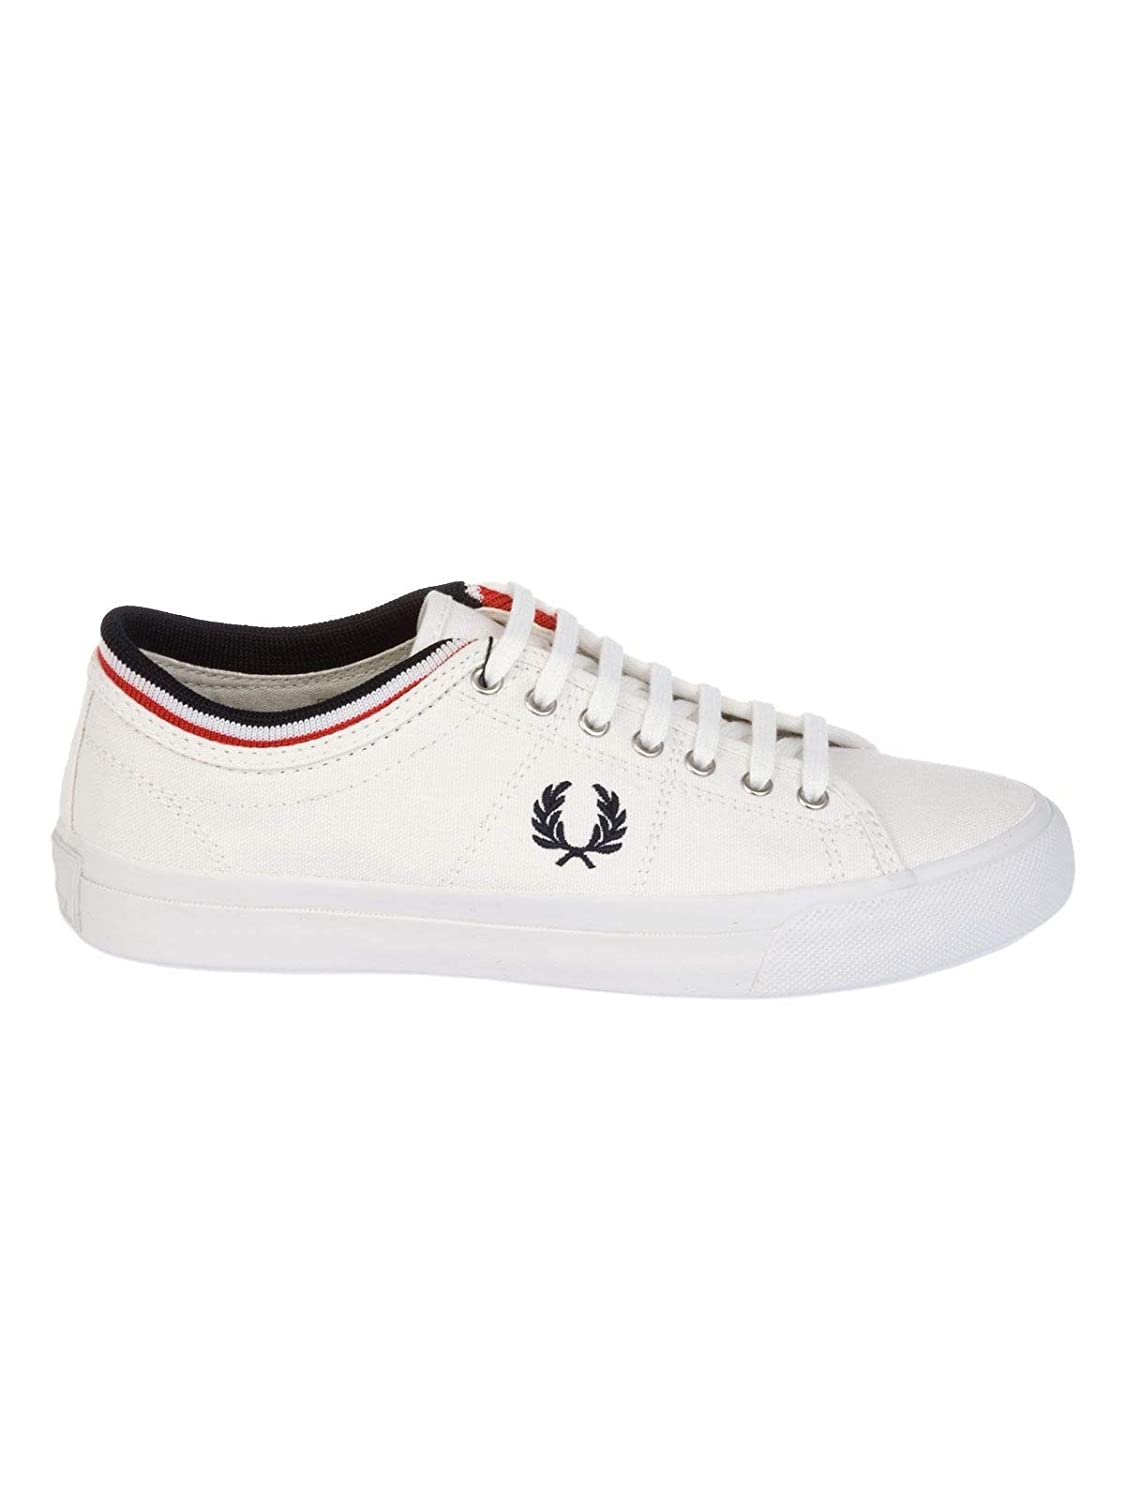 Fred Perry Herren Fpb5210u14100 Weiss Stoff Sneakers: Amazon